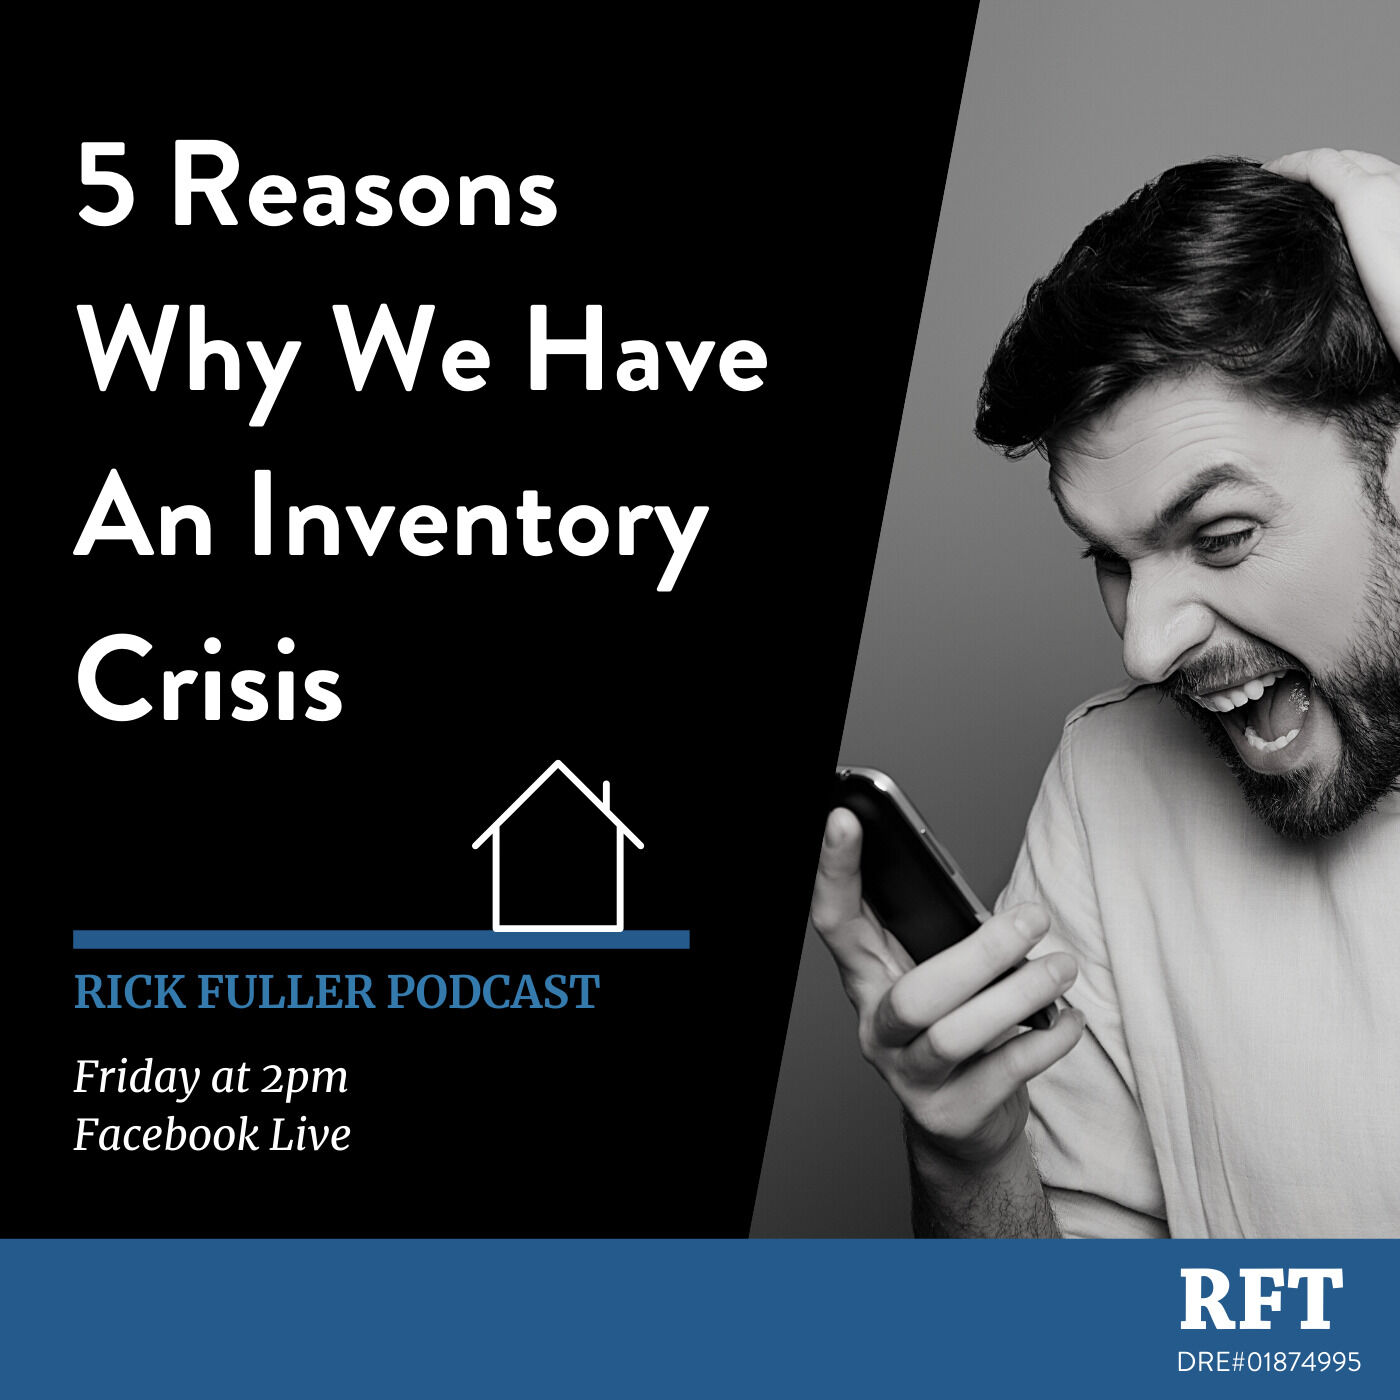 5 Reasons Why We Have An Inventory Crisis